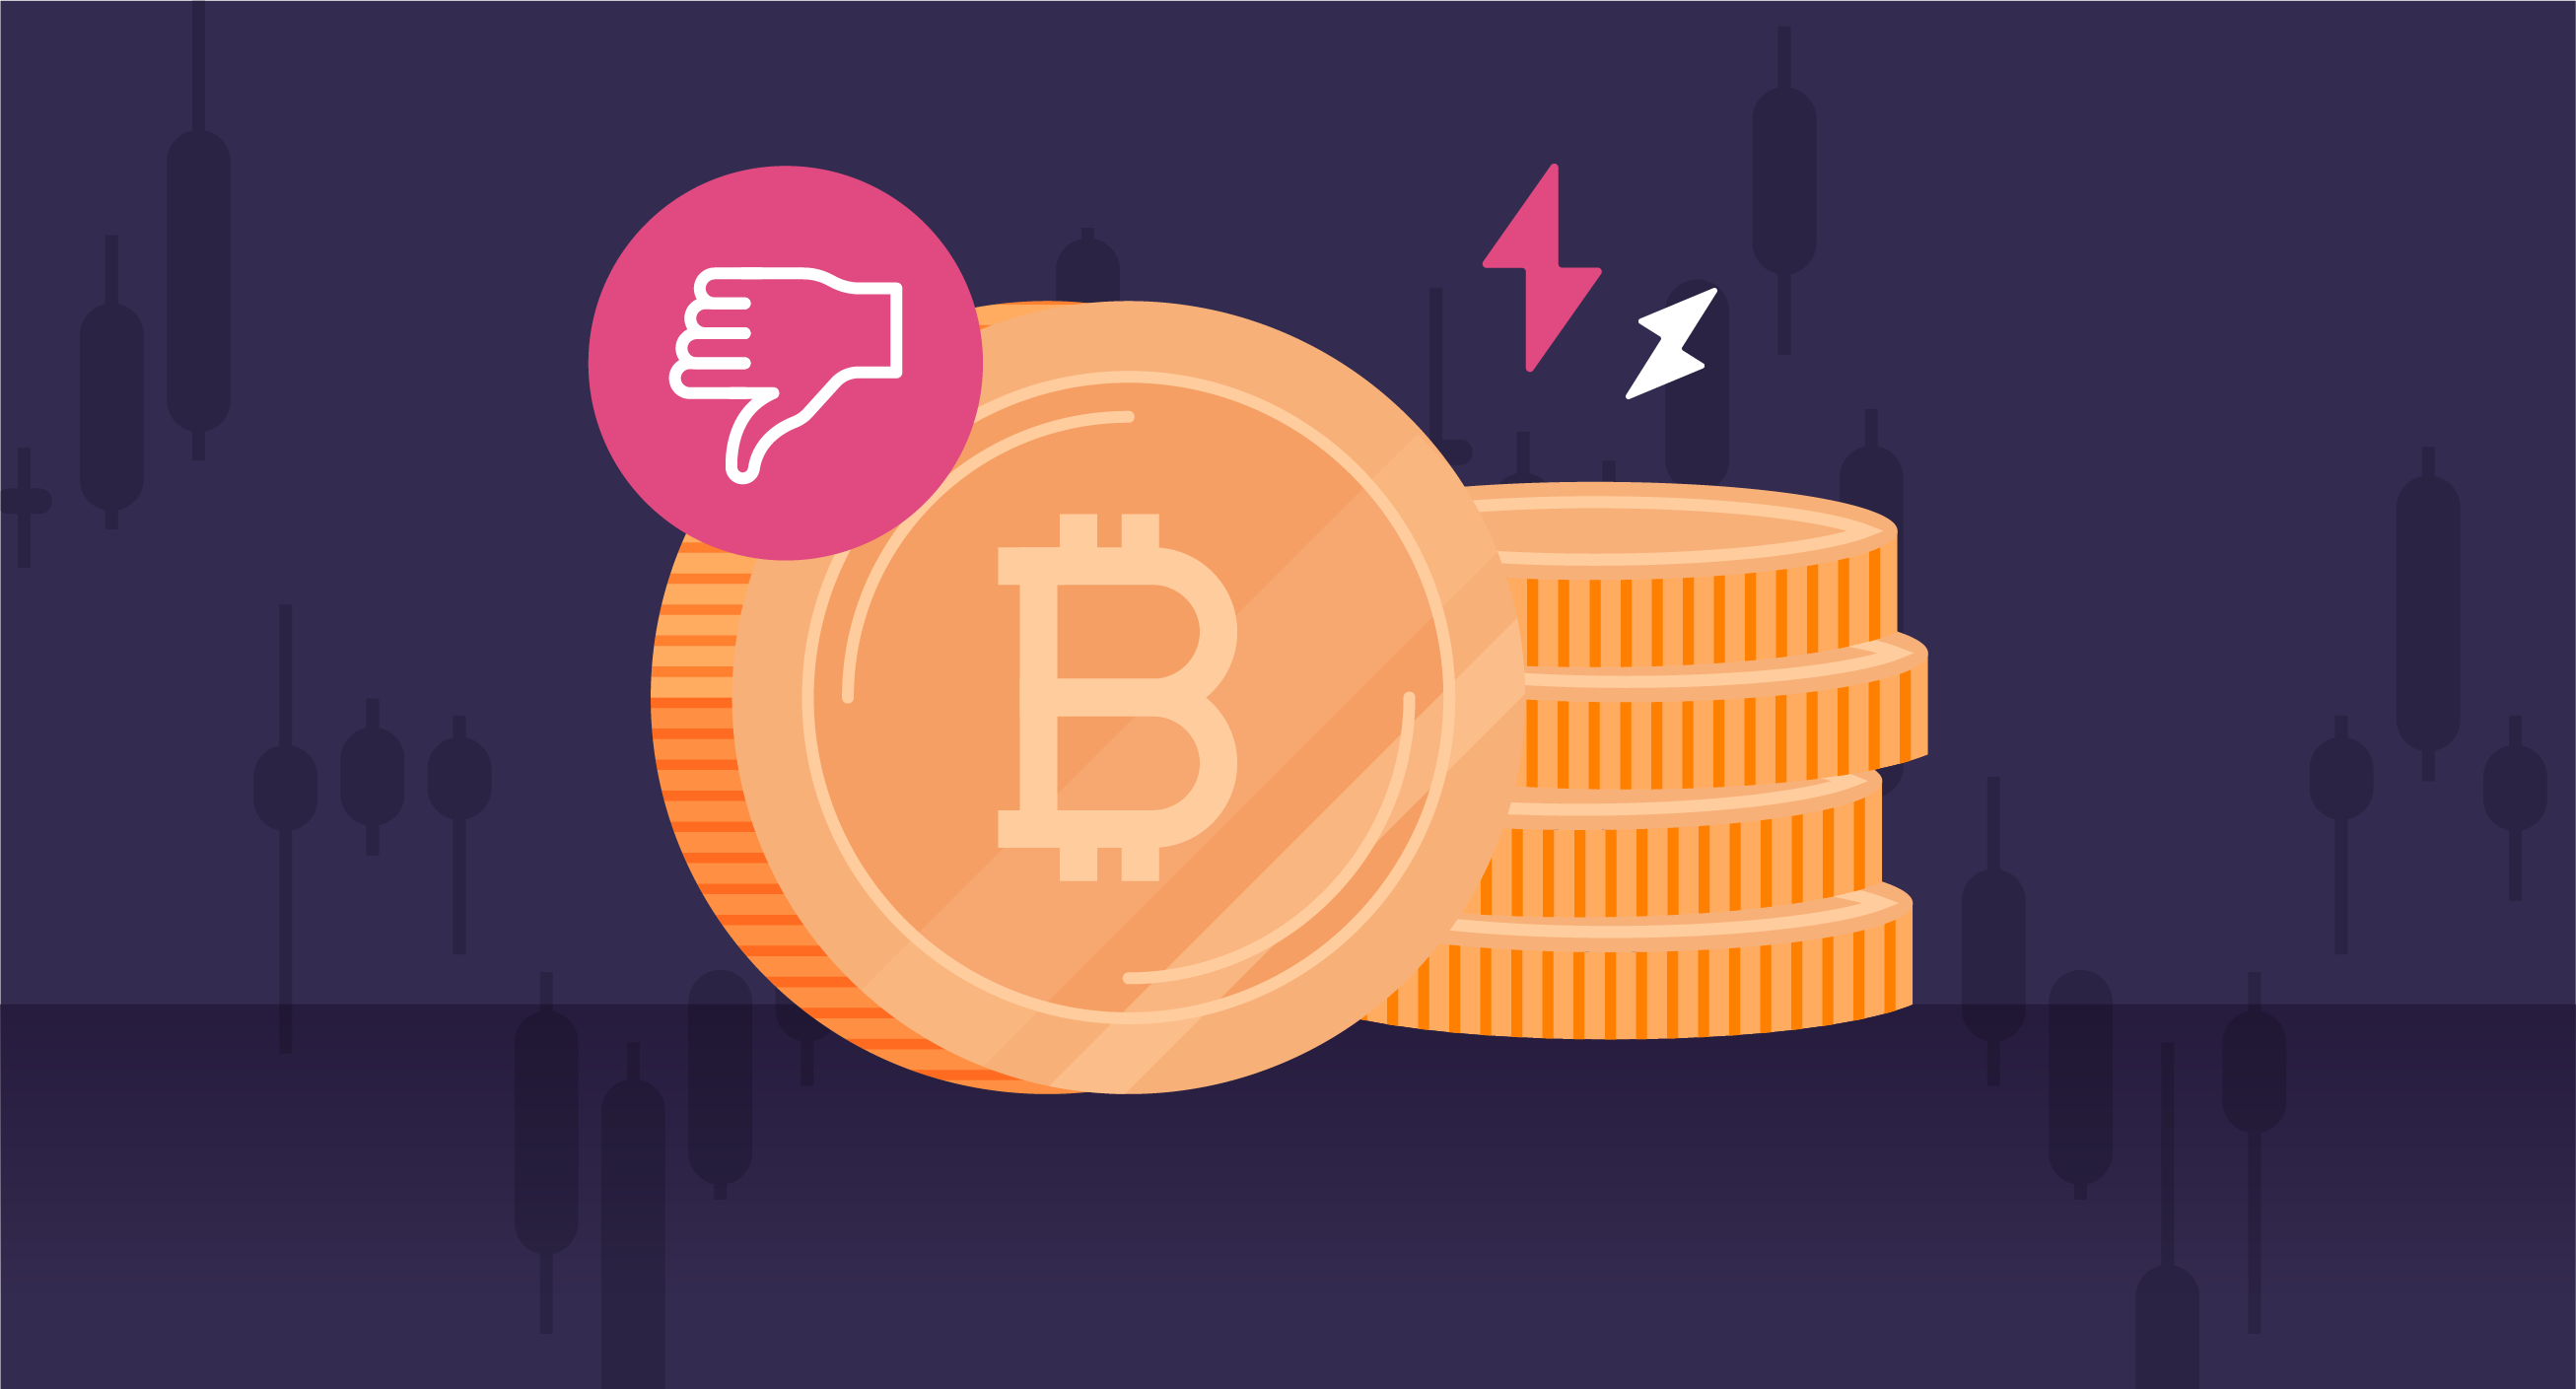 """cons-of-bitcoin-2x """"width ="""" 2613 """"height ="""" 1409 """"srcset ="""" https://blog.mint.com/wp-content/uploads/2021/10/cons-of-bitcoin-2x.png 2613w, https://blog.mint.com/wp-content/uploads/2021/10/cons-of-bitcoin-2x.png?resize=768.414 768w, https://blog.mint.com/wp-content /uploads/2021/10/cons-of-bitcoin-2x.png?resize=1536.828 1536w, https://blog.mint.com/wp-content/uploads/2021/10/cons-of-bitcoin- 2x. png? resize = 2048.1104 2048w, https://blog.mint.com/wp-content/uploads/2021/10/cons-of-bitcoin-2x.png?resize=324.175 324w, https: // blog. mint.com/wp-content/uploads/2021/10/cons-of-bitcoin-2x.png?resize=960,518 960w, https://blog.mint.com/wp-content/uploads/2021/10 / cons -of-bitcoin-2x.png? resize = 880.475 880w, https://blog.mint.com/wp-content/uploads/2021/10/cons-of-bitcoin-2x.png?resize=1000, 539 1000w , https://blog.mint.com/wp-content/uploads/2021/10/cons-of-bitcoin-2x.png?resize=647.349 647w, https://blog.mint.com/wp- content / uploads / 2021/10 / cons-of-bitcoin-2x.png? resize = 592.319 592w """"size ="""" (max-width : 261 3px) 100vw, 2613px """"/></p> <h2>Disadvantages of Bitcoin</h2> <p>Despite its rapid growth and increasing number of users, there are some drawbacks to Bitcoin to be aware of, especially if you are wondering """"Is it worth investing in Bitcoin?"""" As with many financial decisions, the more you know, the more informed you can decide whether it is worth investing in Bitcoin.</p> <h3><strong>5. volatility</strong></h3> <p>When Bitcoin was created by Satoshi Nakamoto, it set a limit of 21 million bitcoins that could ever exist, which means it is absolutely in short supply. This scarcity is what makes Bitcoin so valuable, but it also causes its prices to vary drastically, which can be seen as one of the downsides of Bitcoin.</p> <p>Another reason for this price volatility is that there is no physical commodity such as paper money that can be printed when there is greater demand. This rapid price spike can make it a risky investment and create confusion with the """